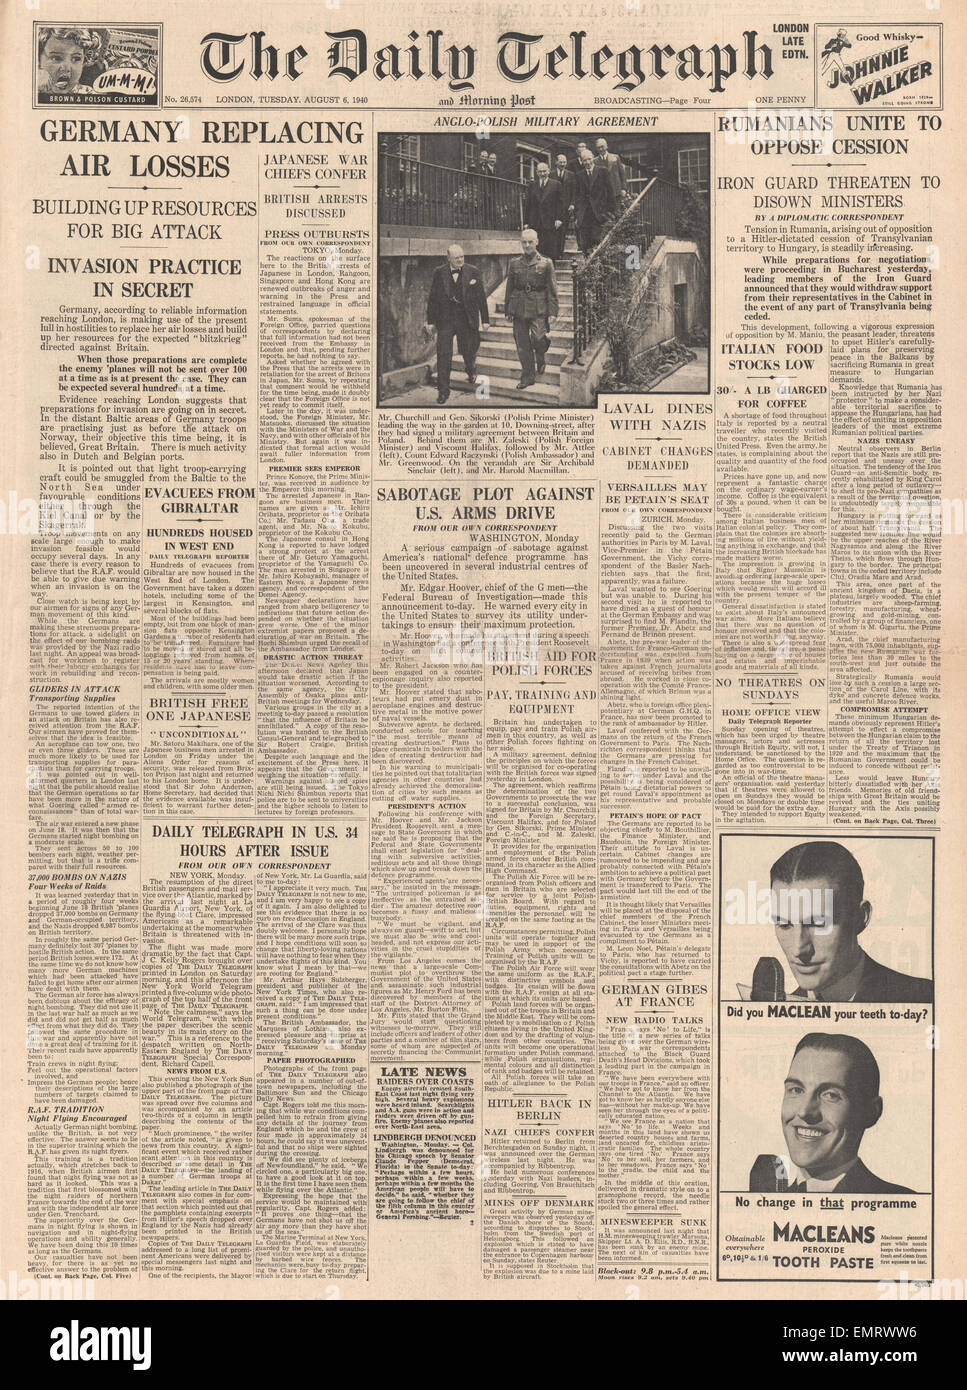 1940 front page Daily Telegraph Germany Replacing Air Losses Anglo - Polish Military Agreement  Romanians oppose - Stock Image